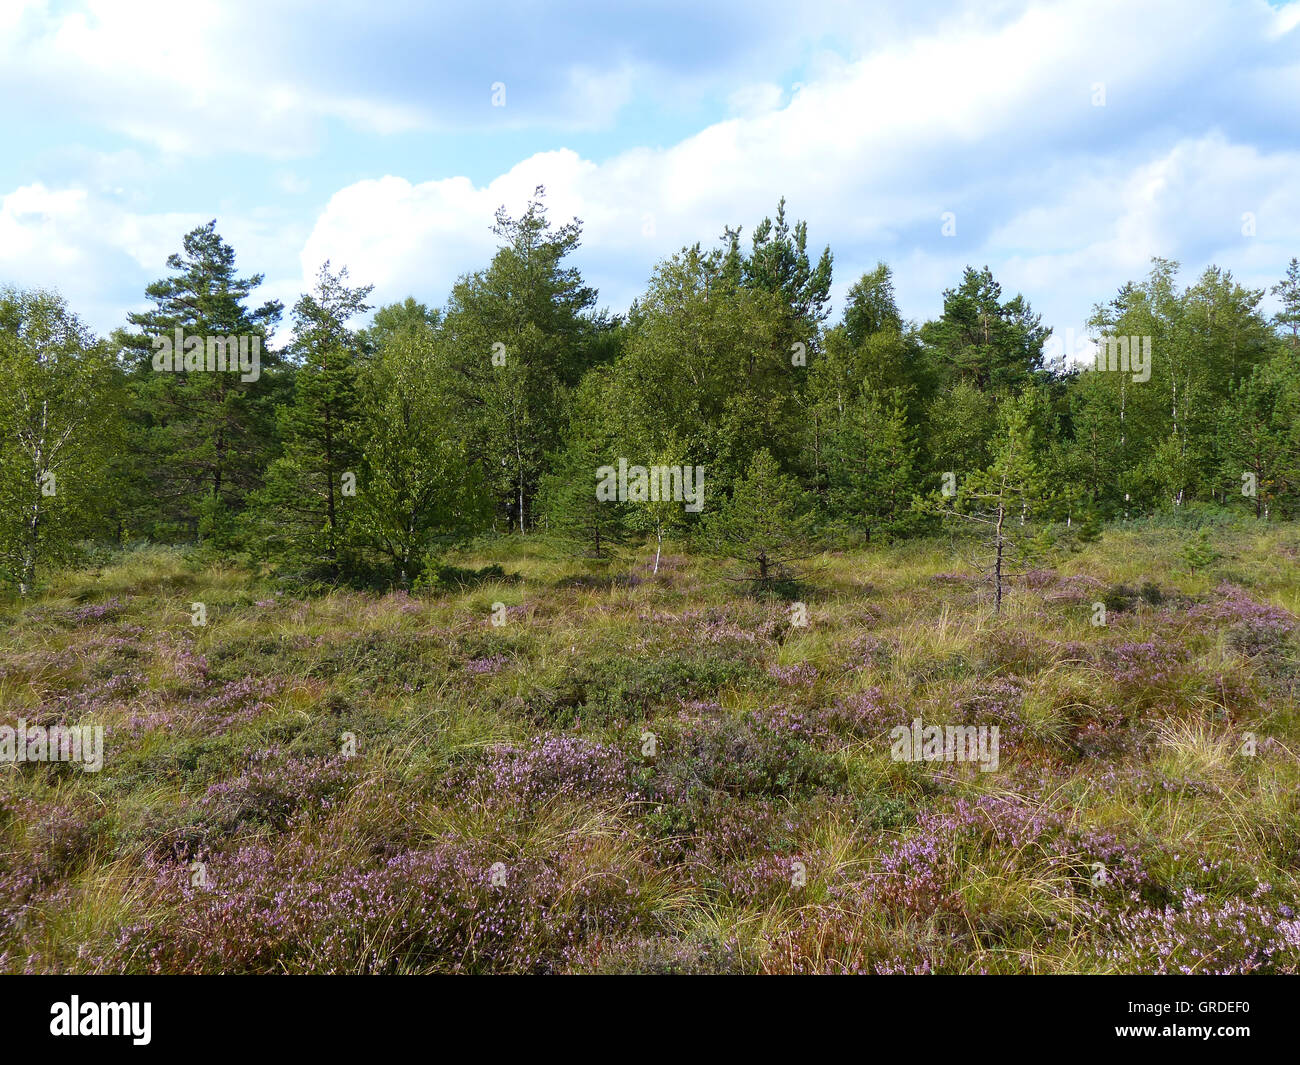 Heathland With Birch Trees, Spruces And Pines In Rhoen,Black Moor, Bavaria, Germany, Europe - Stock Image